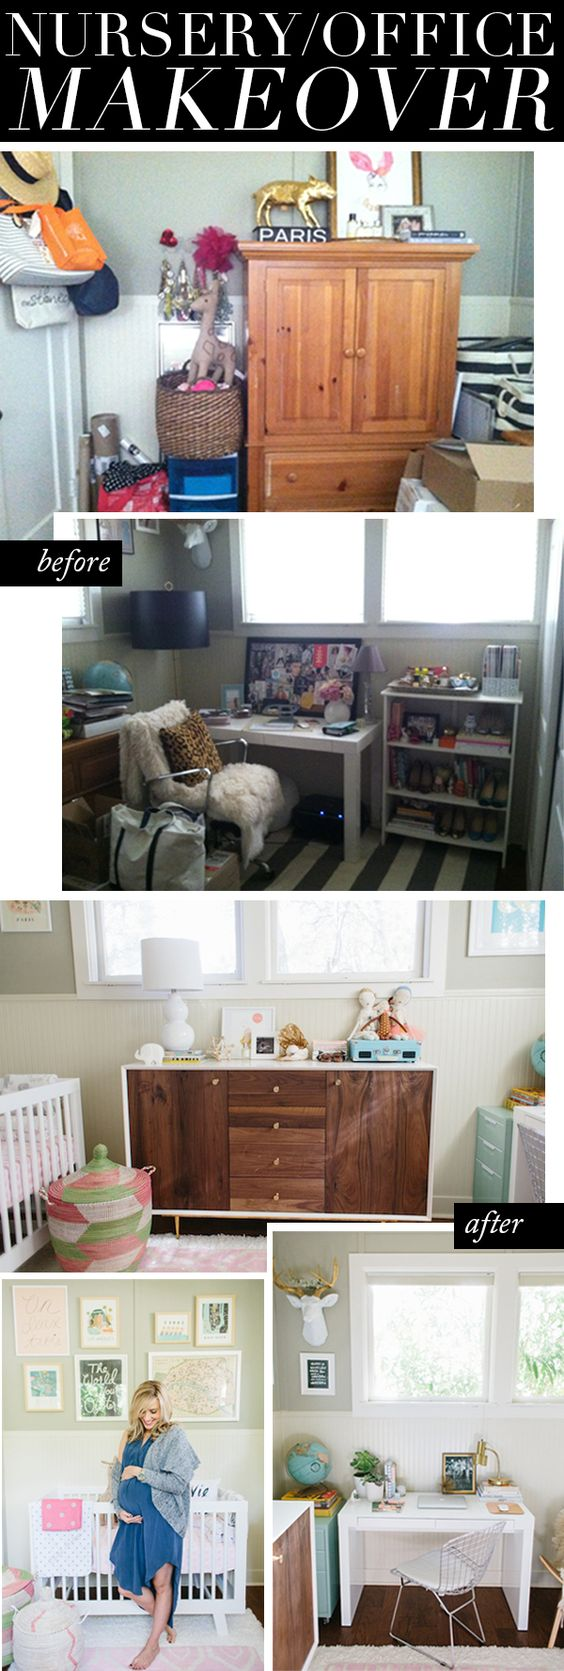 Taylor Sterling's Nursery/Office Makeover